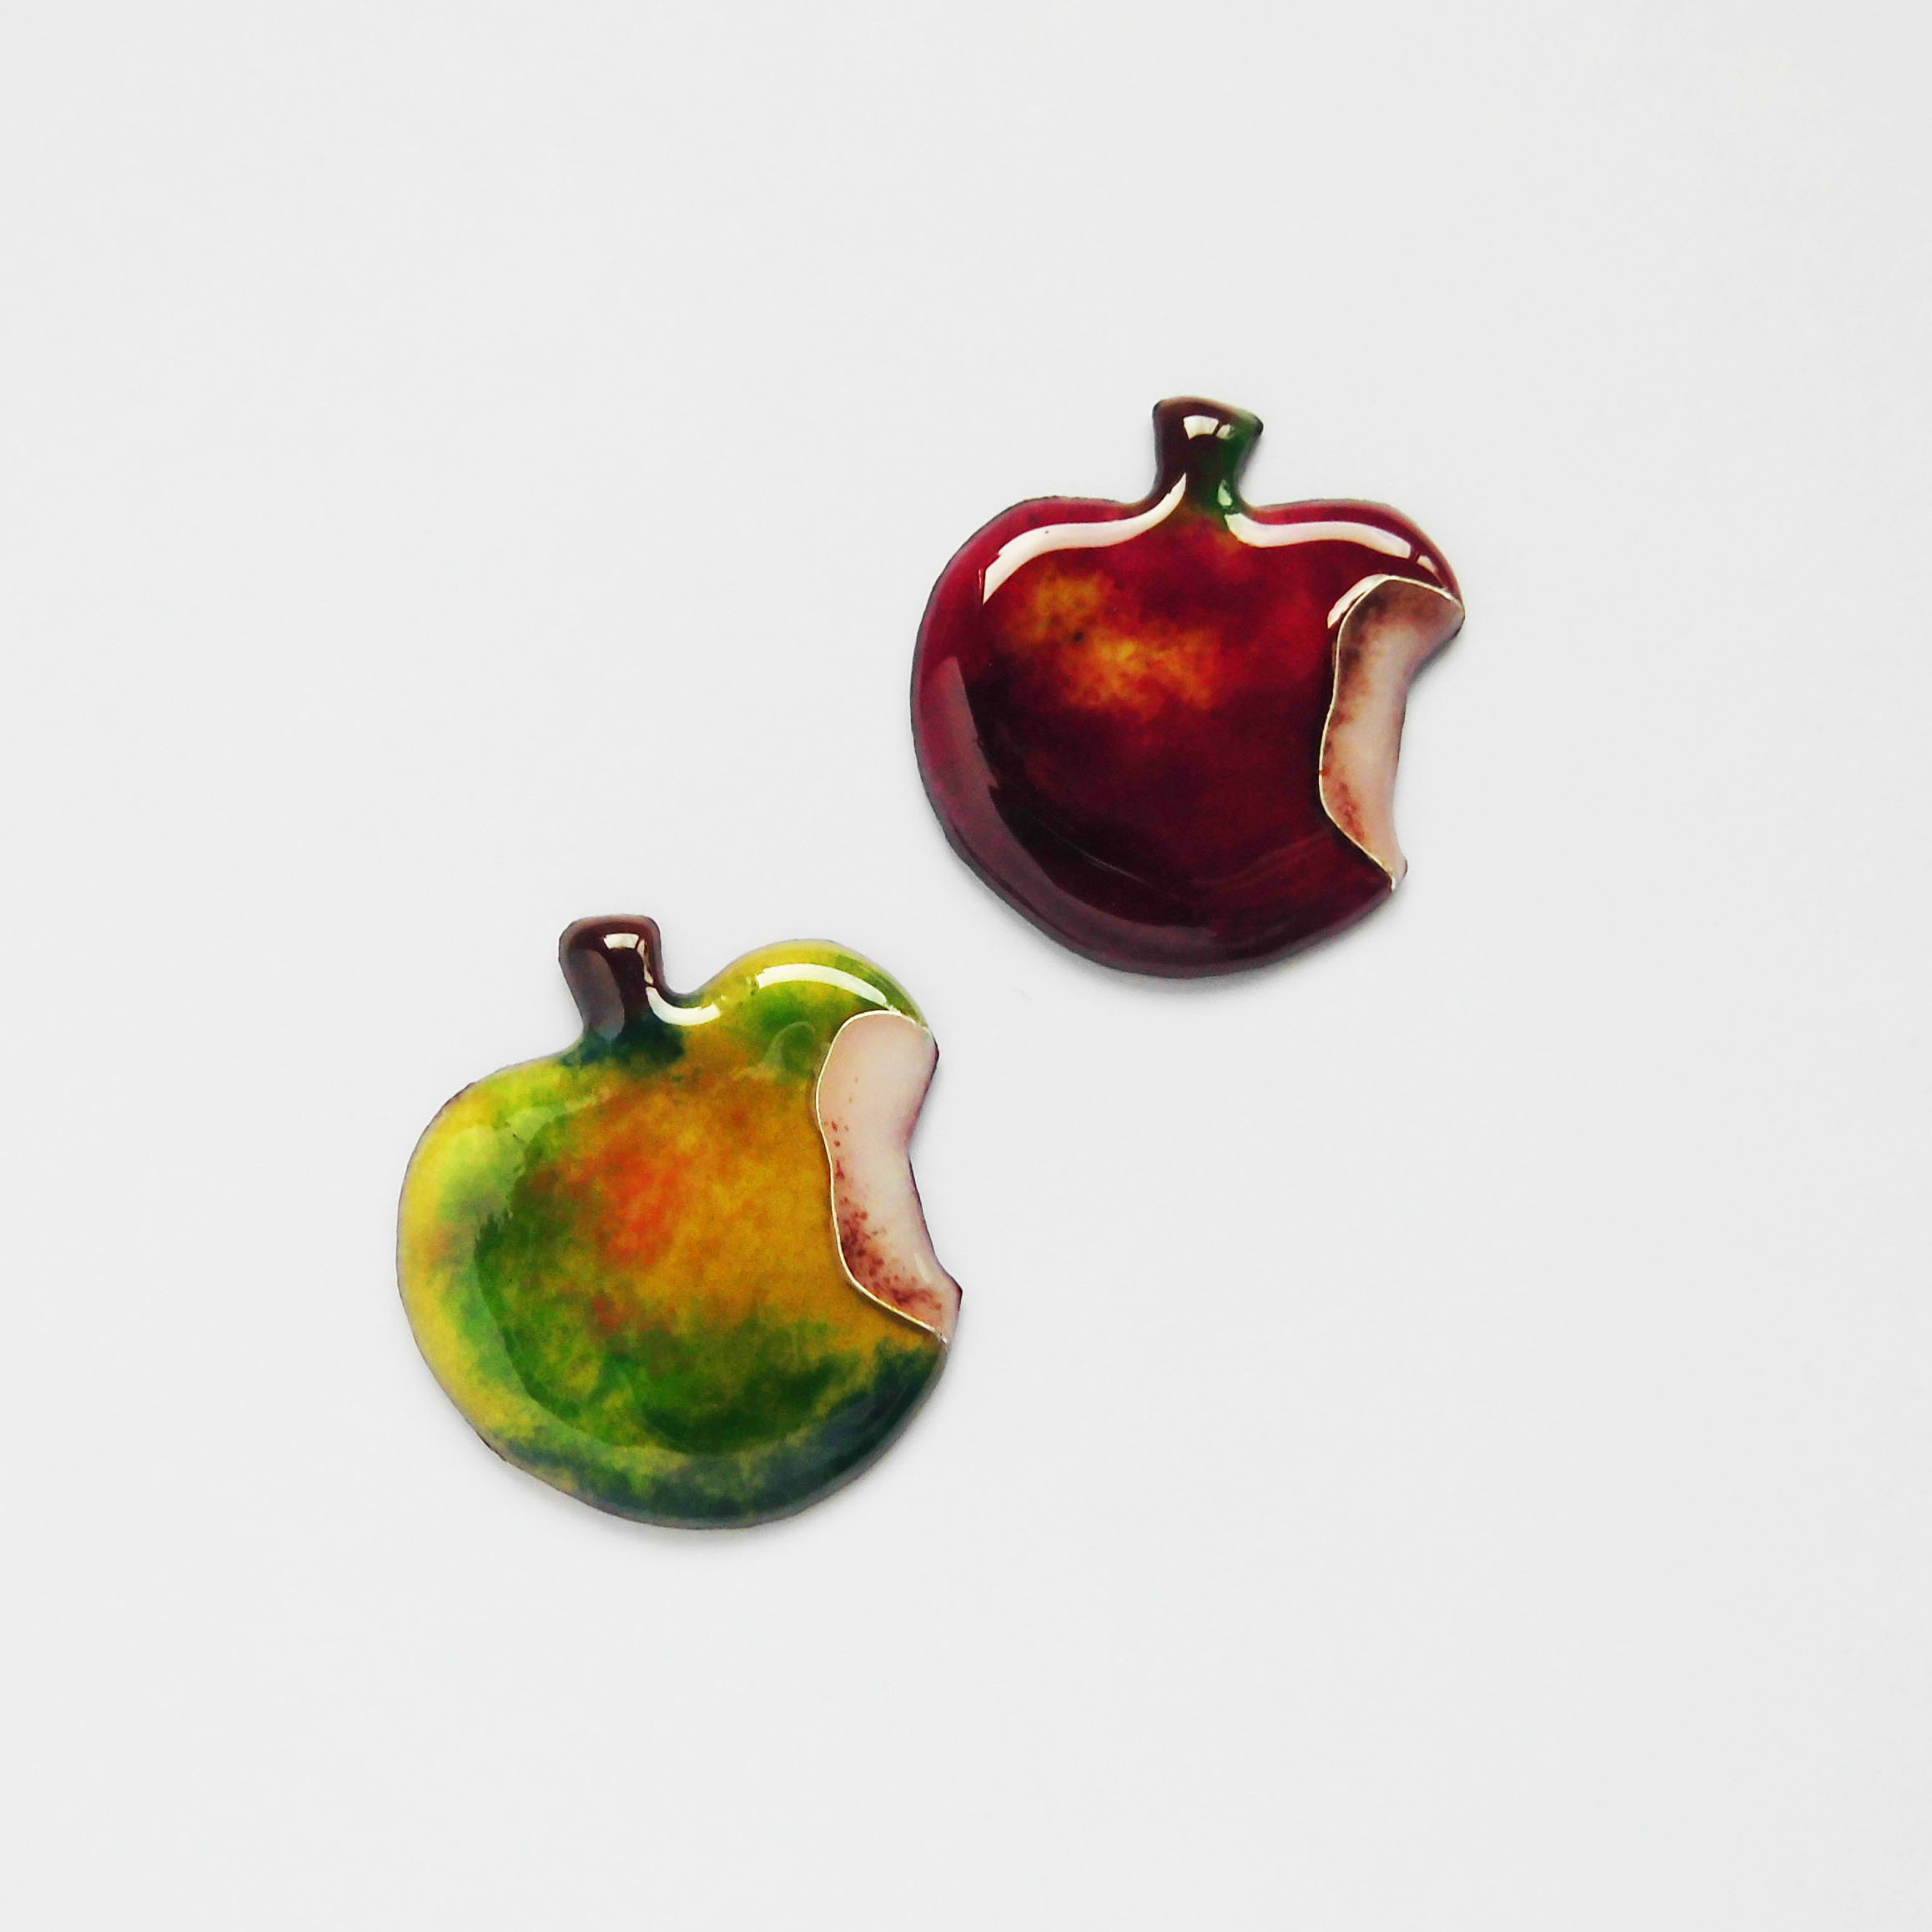 Painter's apple